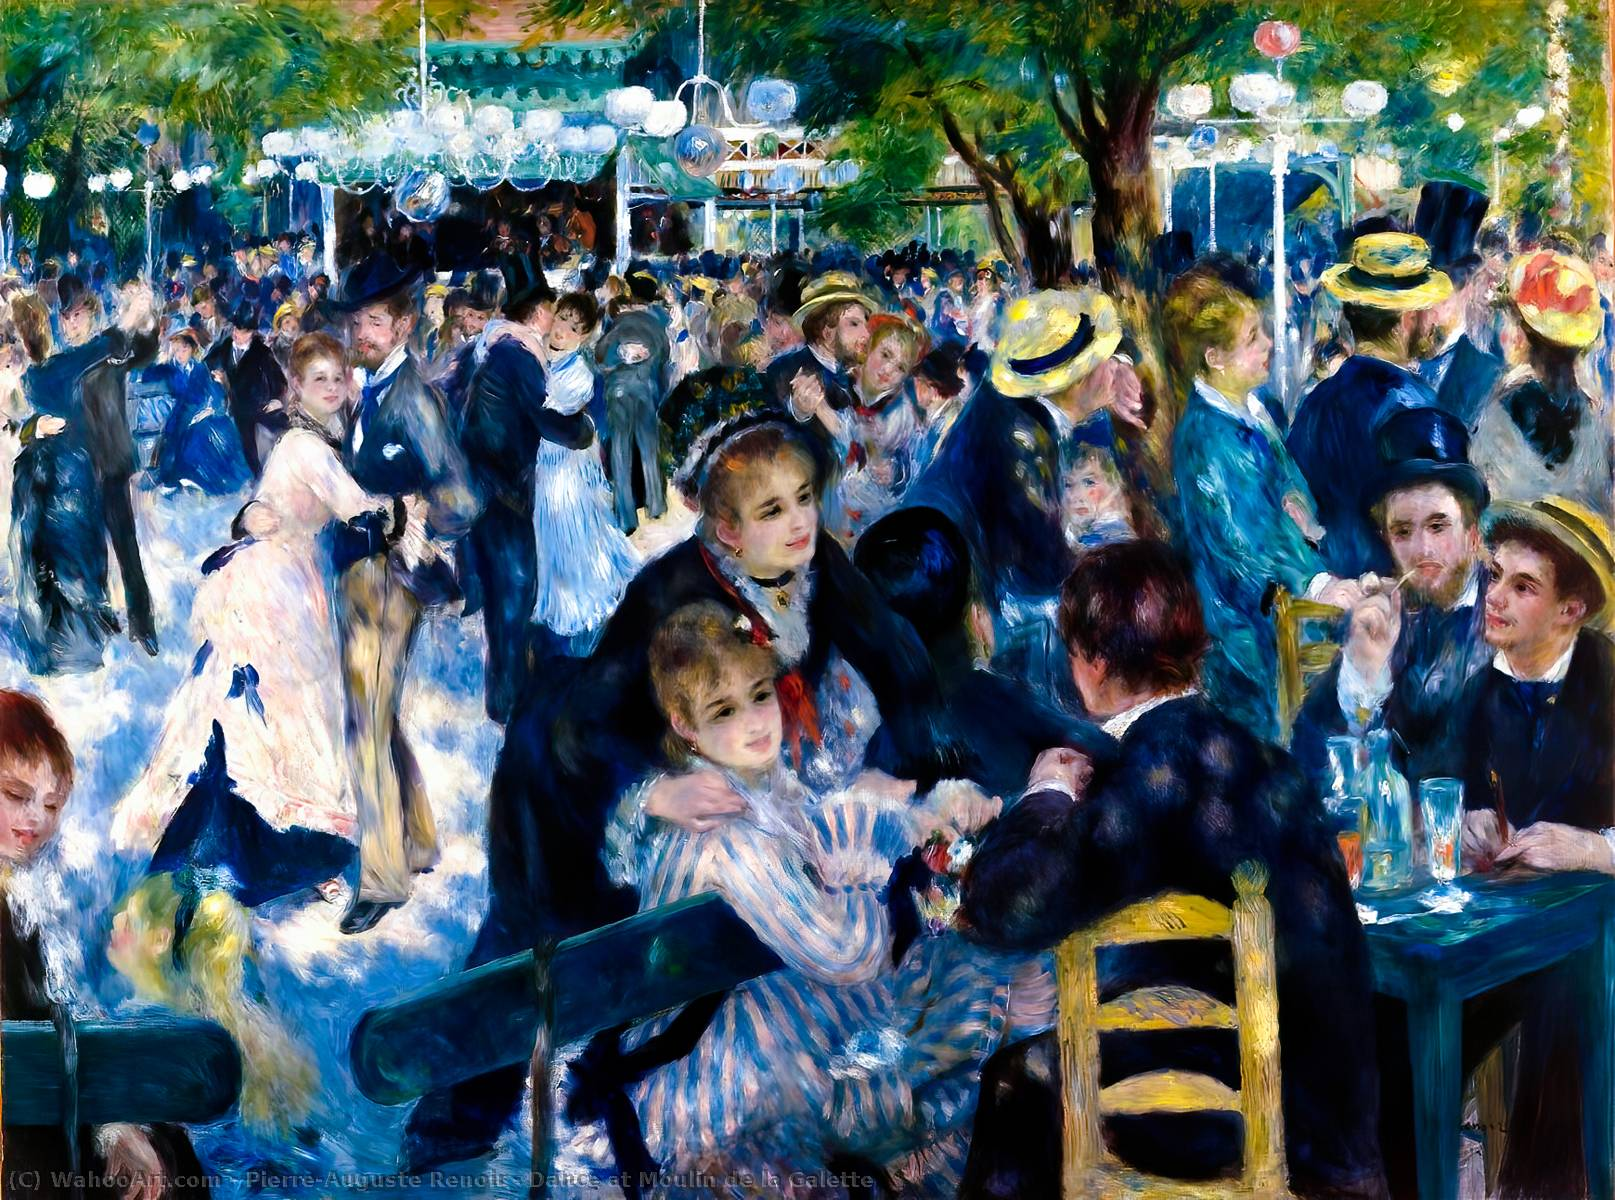 Buy Museum Art Reproductions | Dance at Moulin de la Galette by Pierre-Auguste Renoir | Most-Famous-Paintings.com